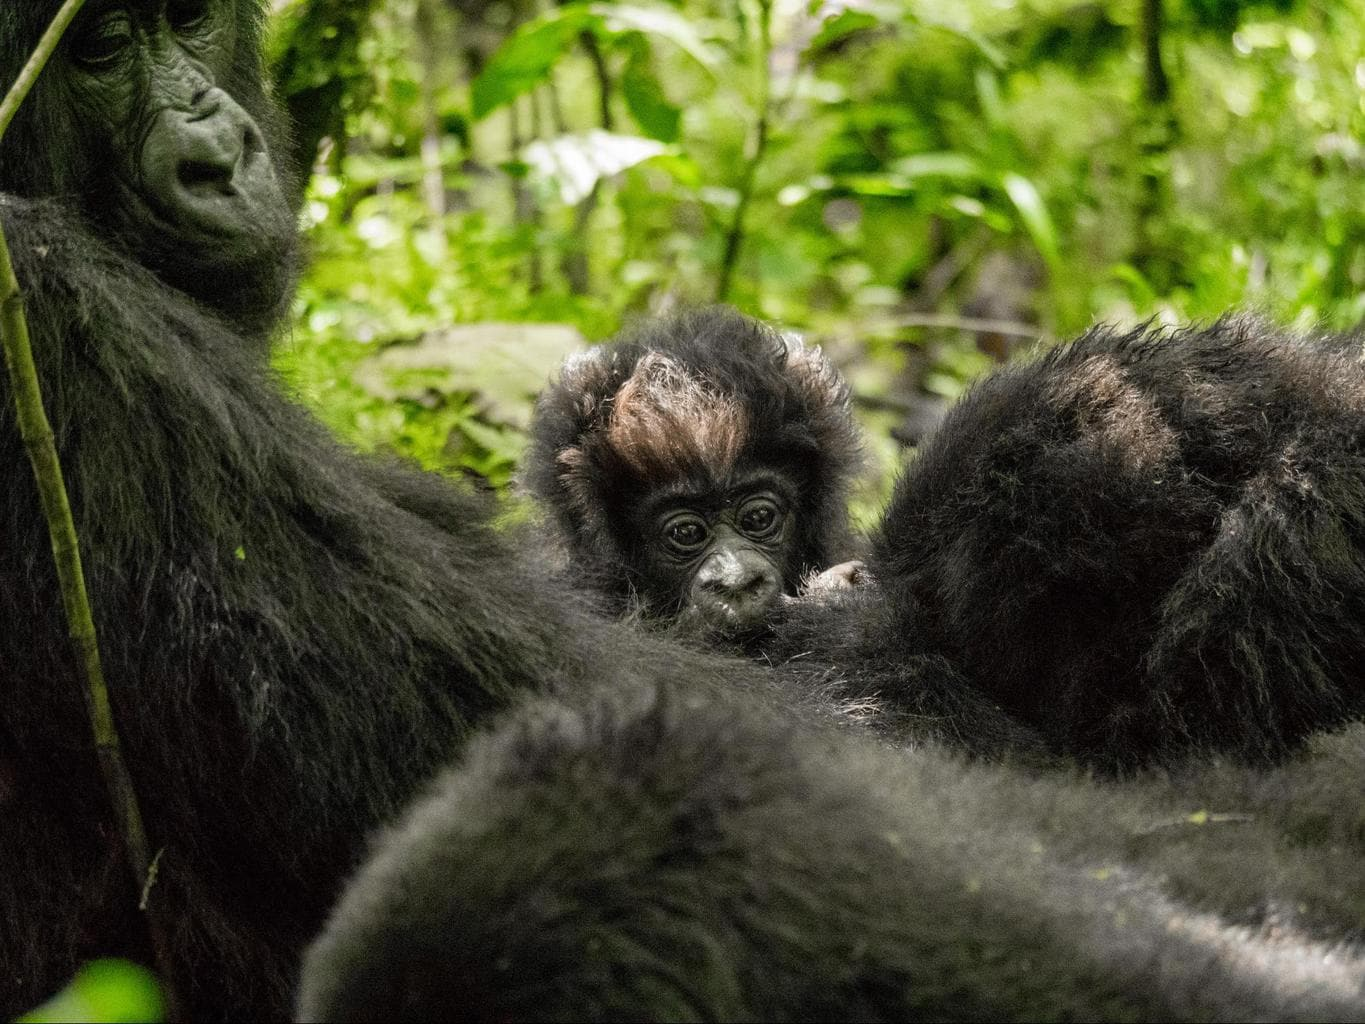 A one month old baby gorilla